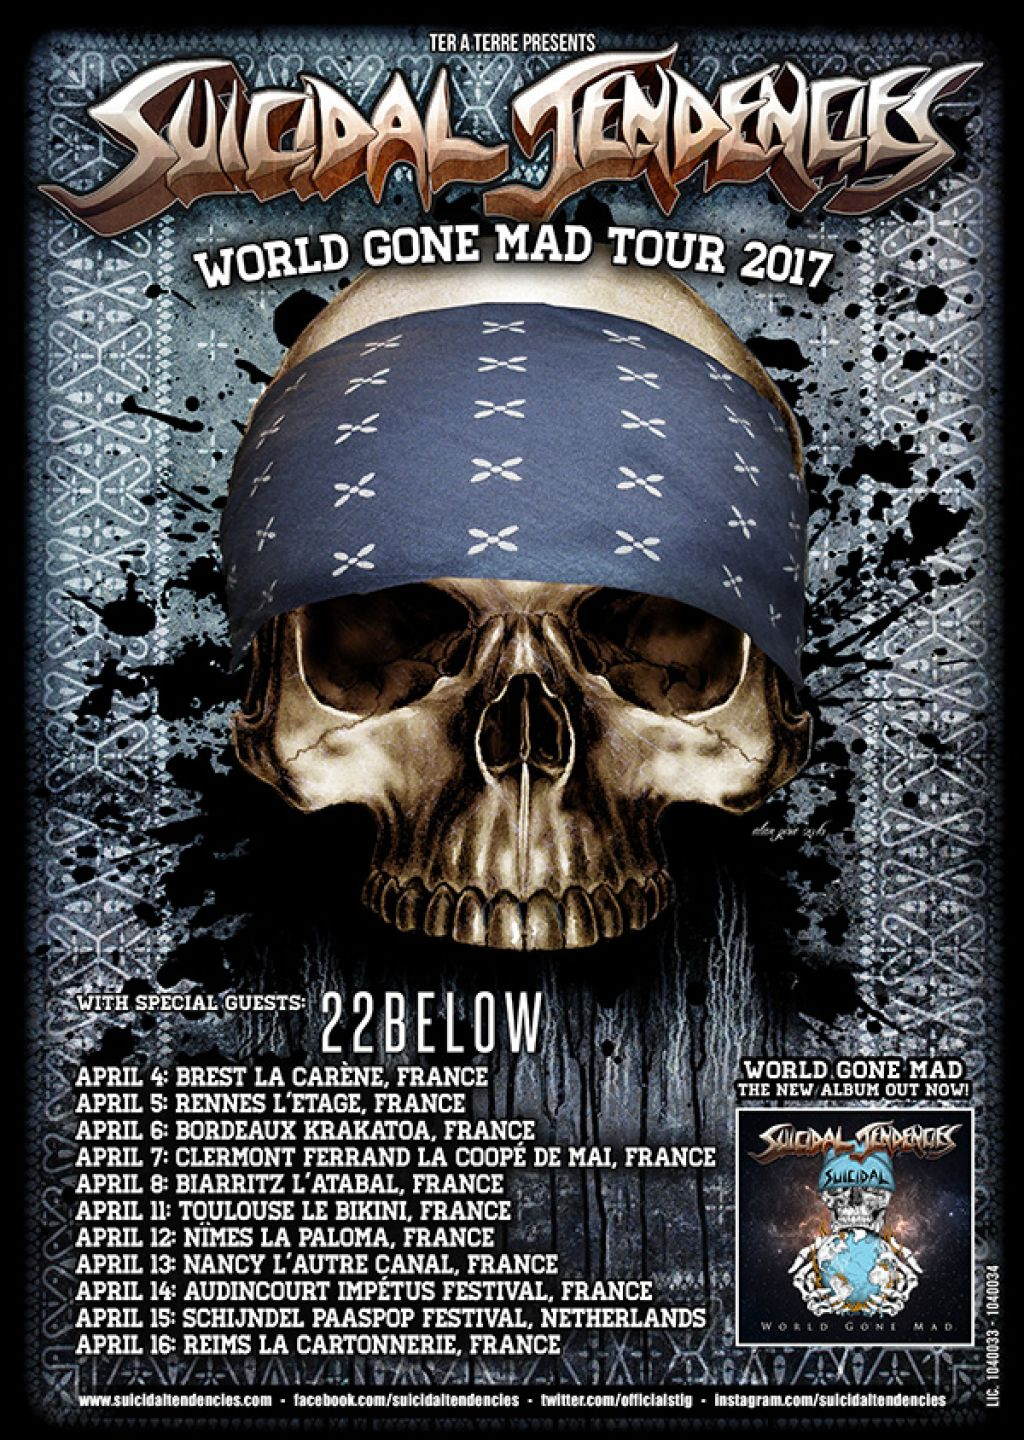 WORLD GONE MAD TOUR HITS FRANCE!